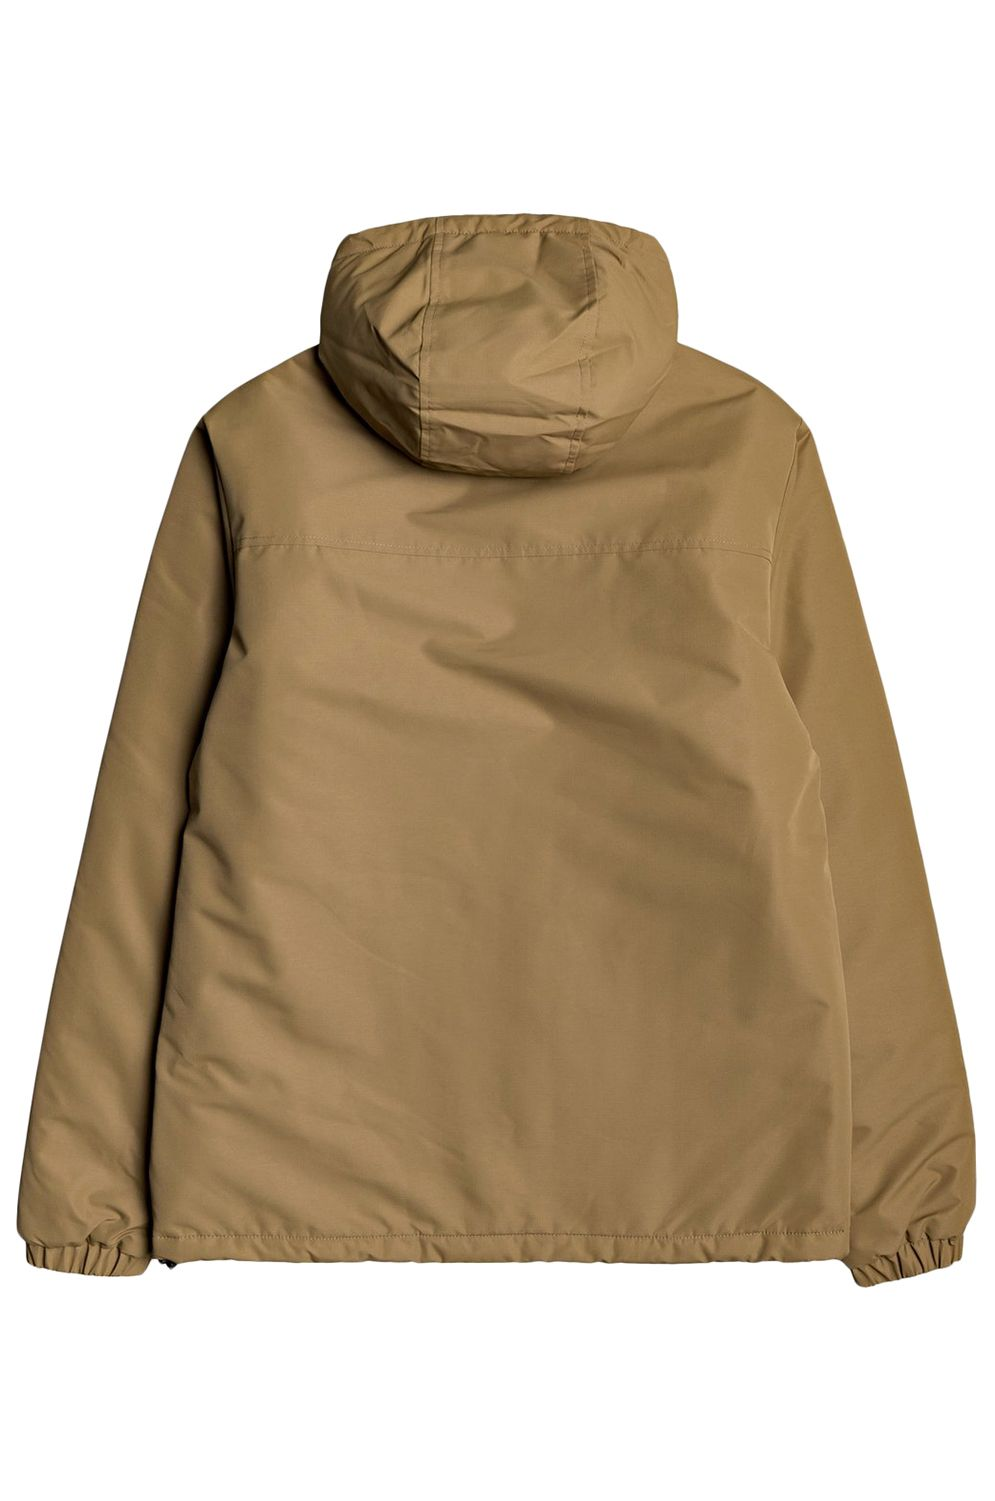 Blusão Billabong TRANSPORT REVO JACKE ADVENTURE DIVISION Clay